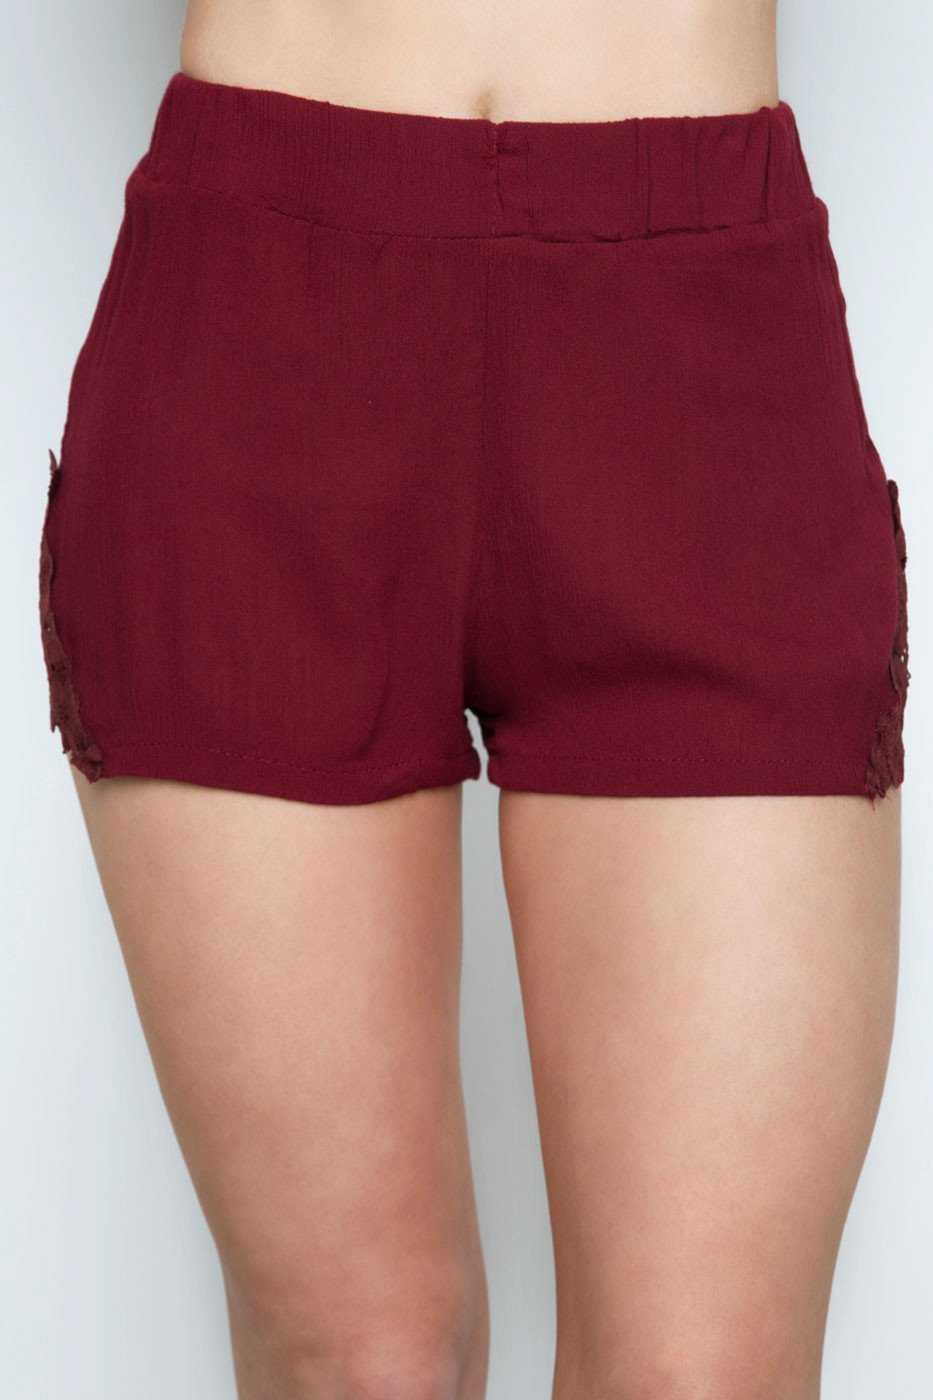 Shorts - New Dawn Shorts - Burgundy